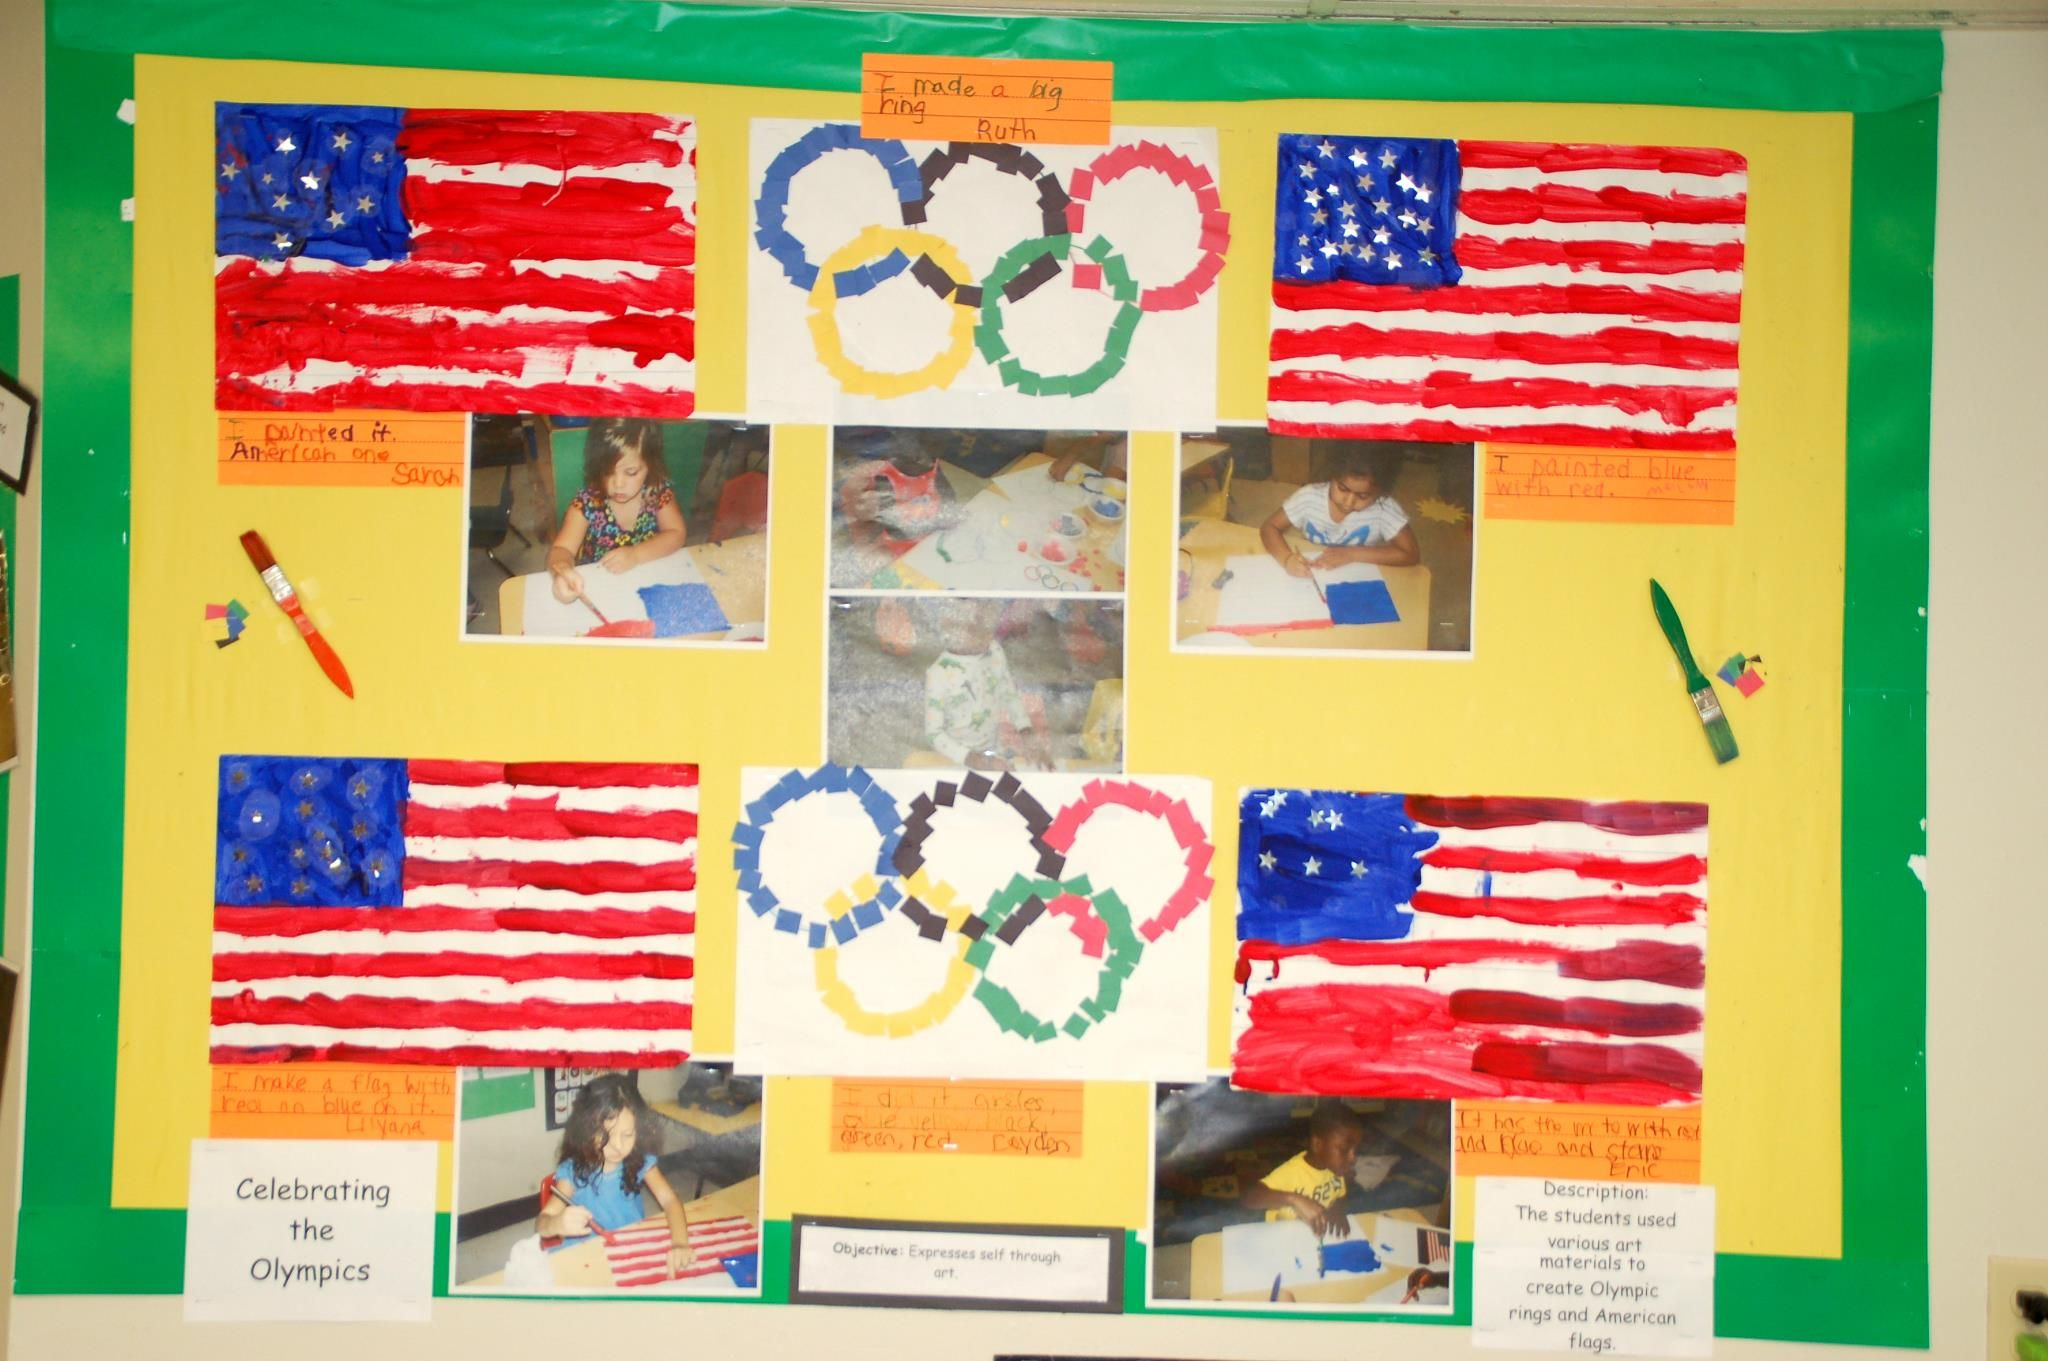 These Cclc Preschool Students Celebrated The Olympics By